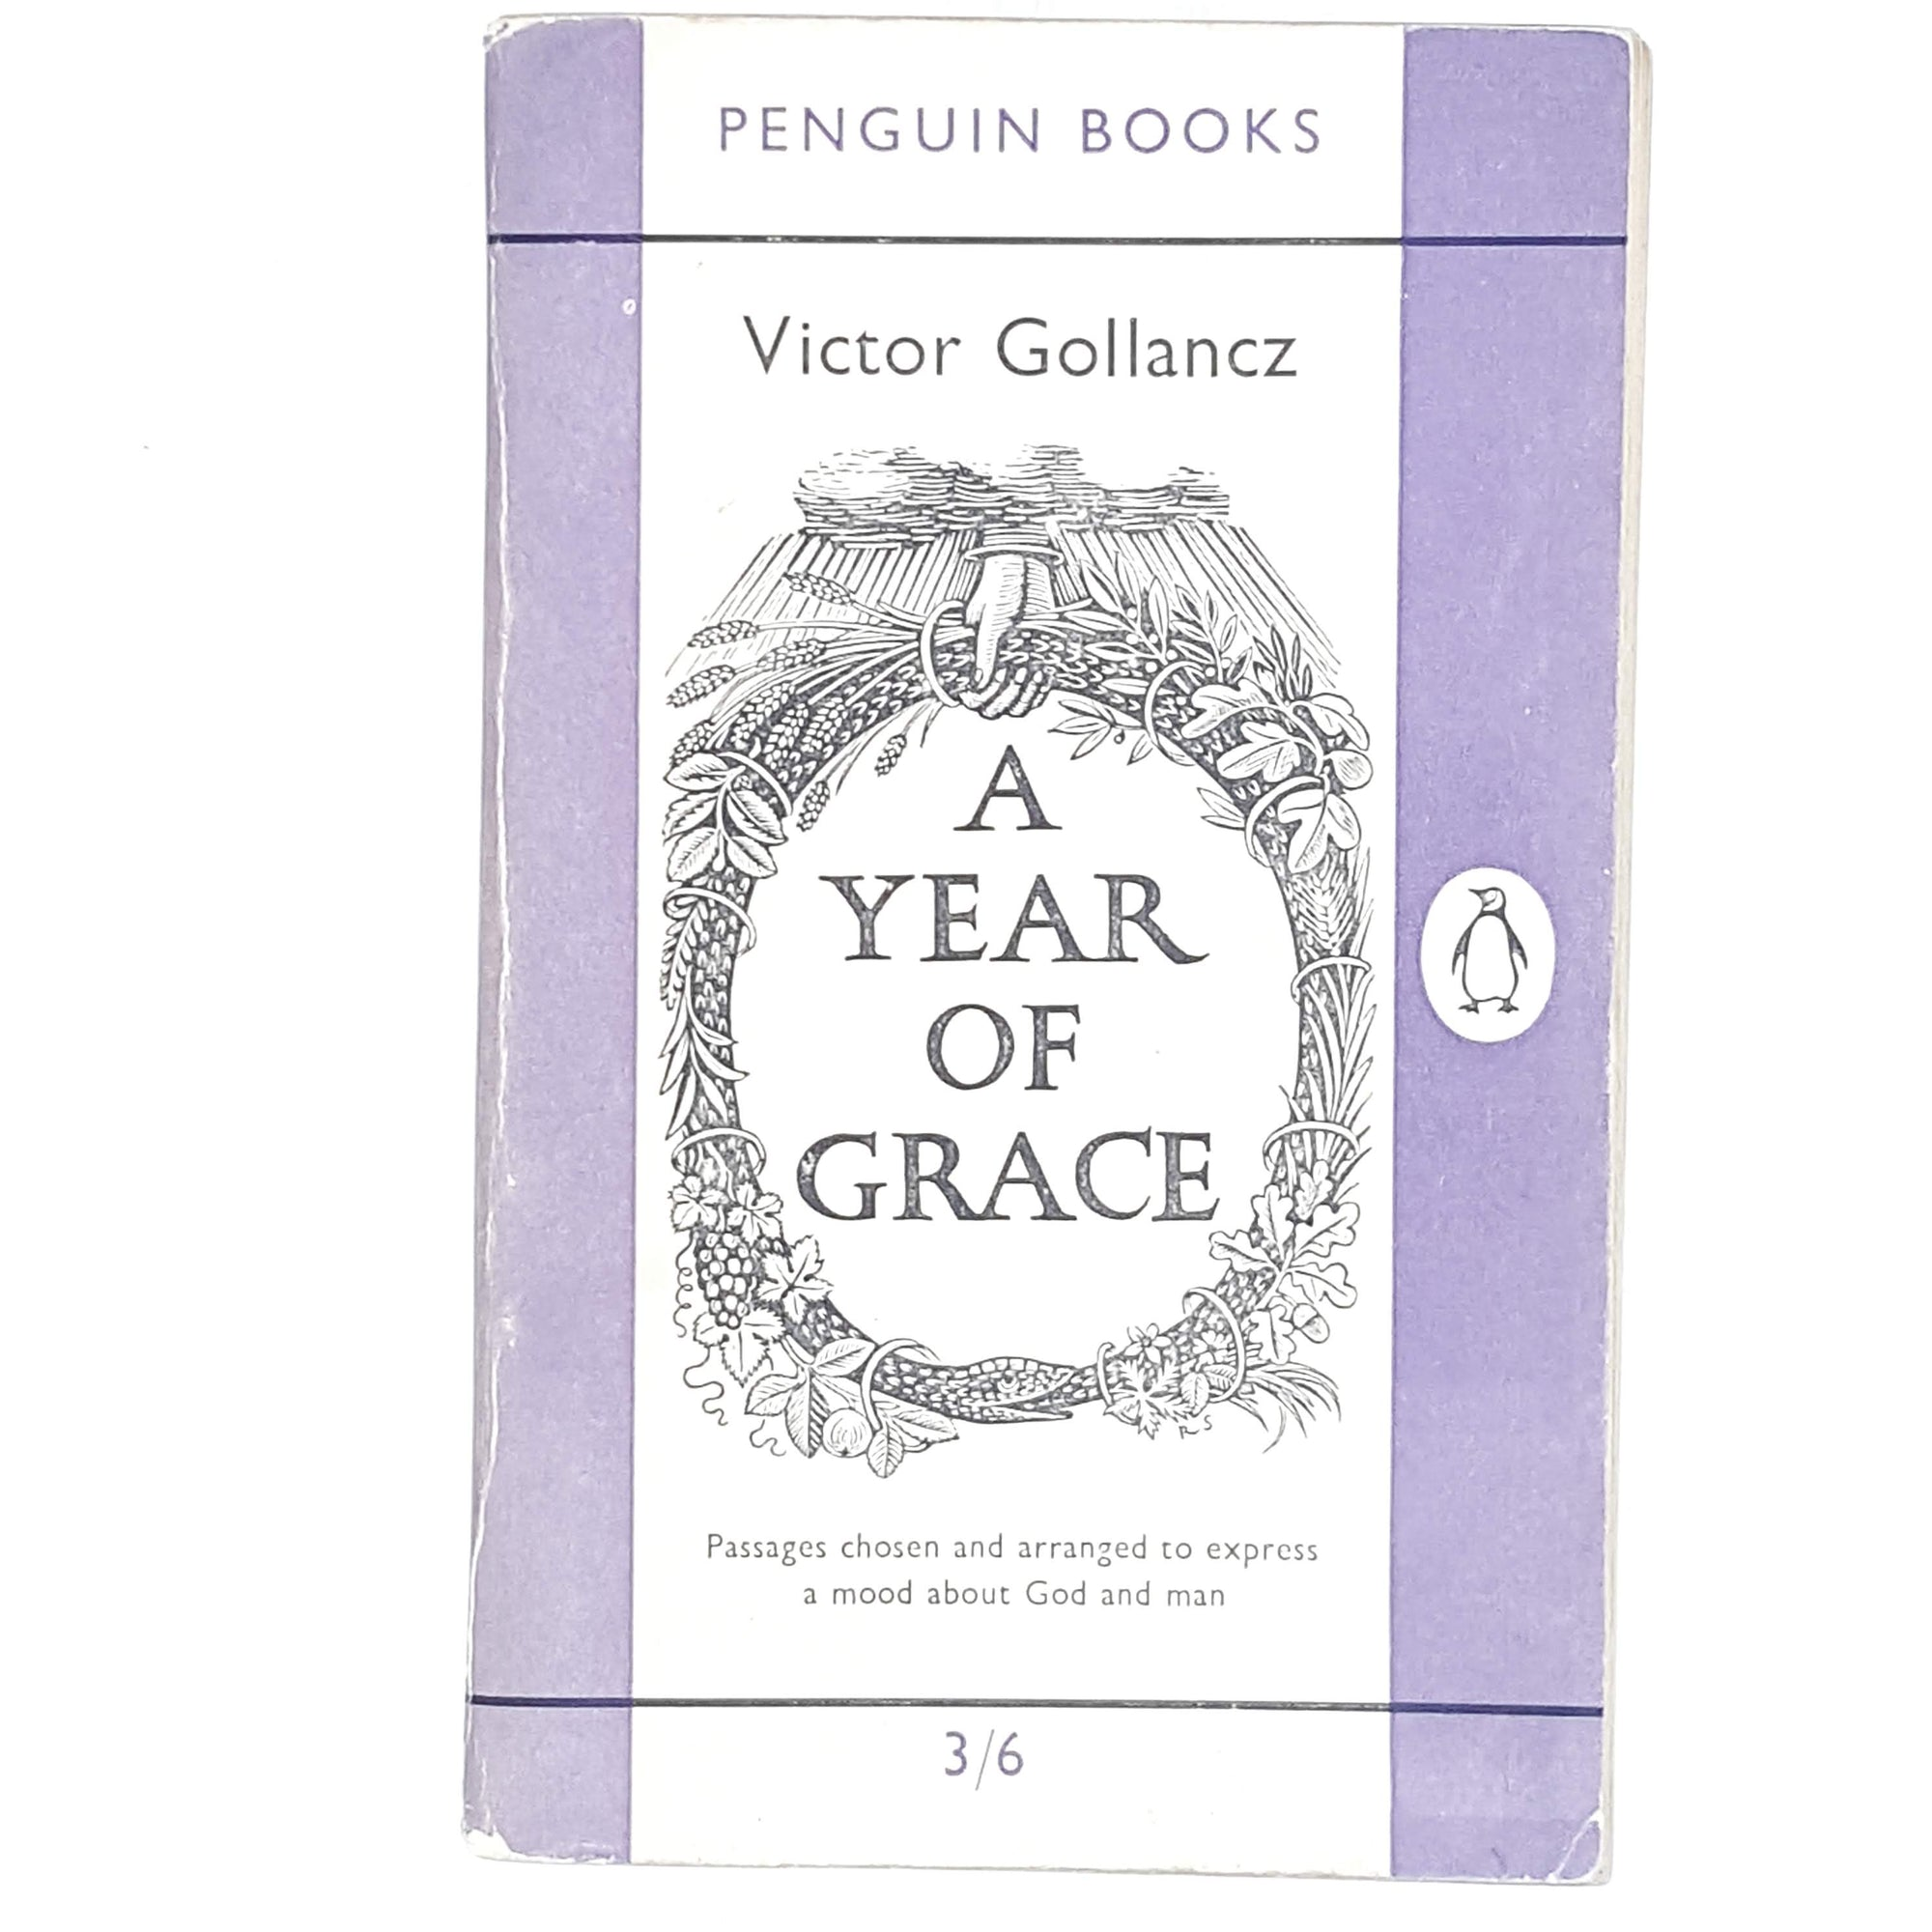 First Edition Penguin A Year of Grace 1955